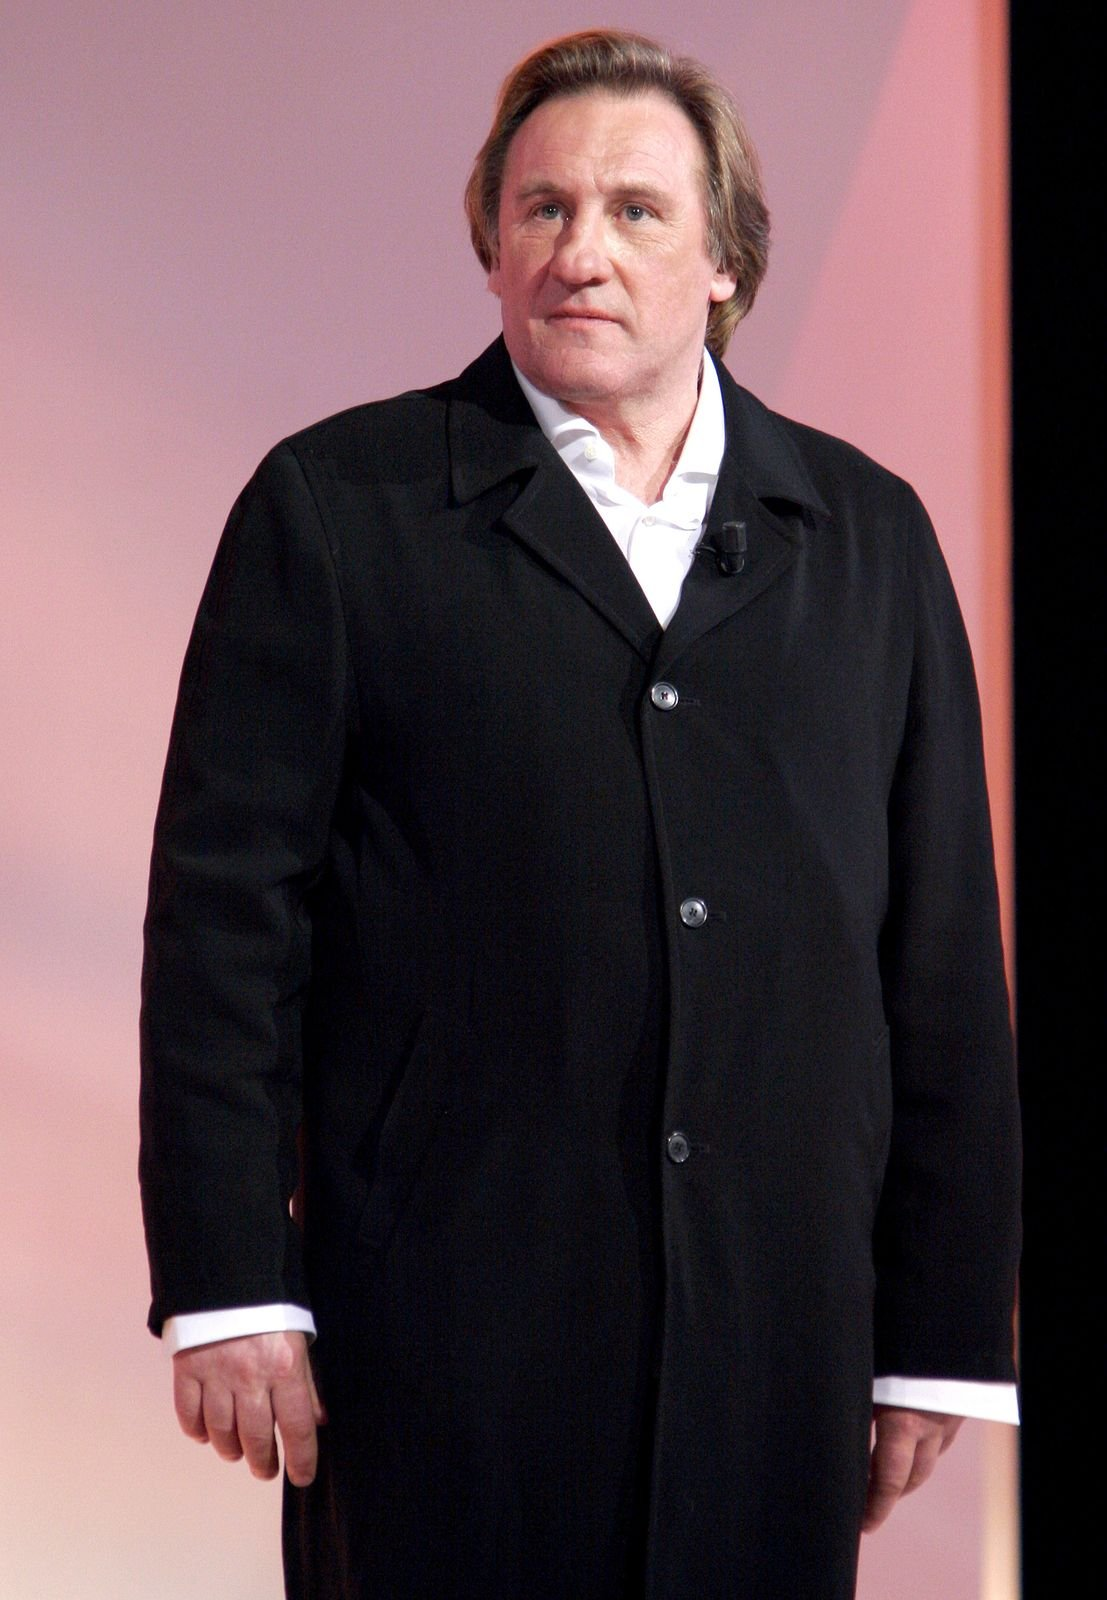 Gérard Depardieu at the Chatelet Theatre for the 30th Cesar Awards Ceremonyin Paris, France on February 26, 2005 | Photo:Jean Baptiste Lacroix/WireImage/Getty Images